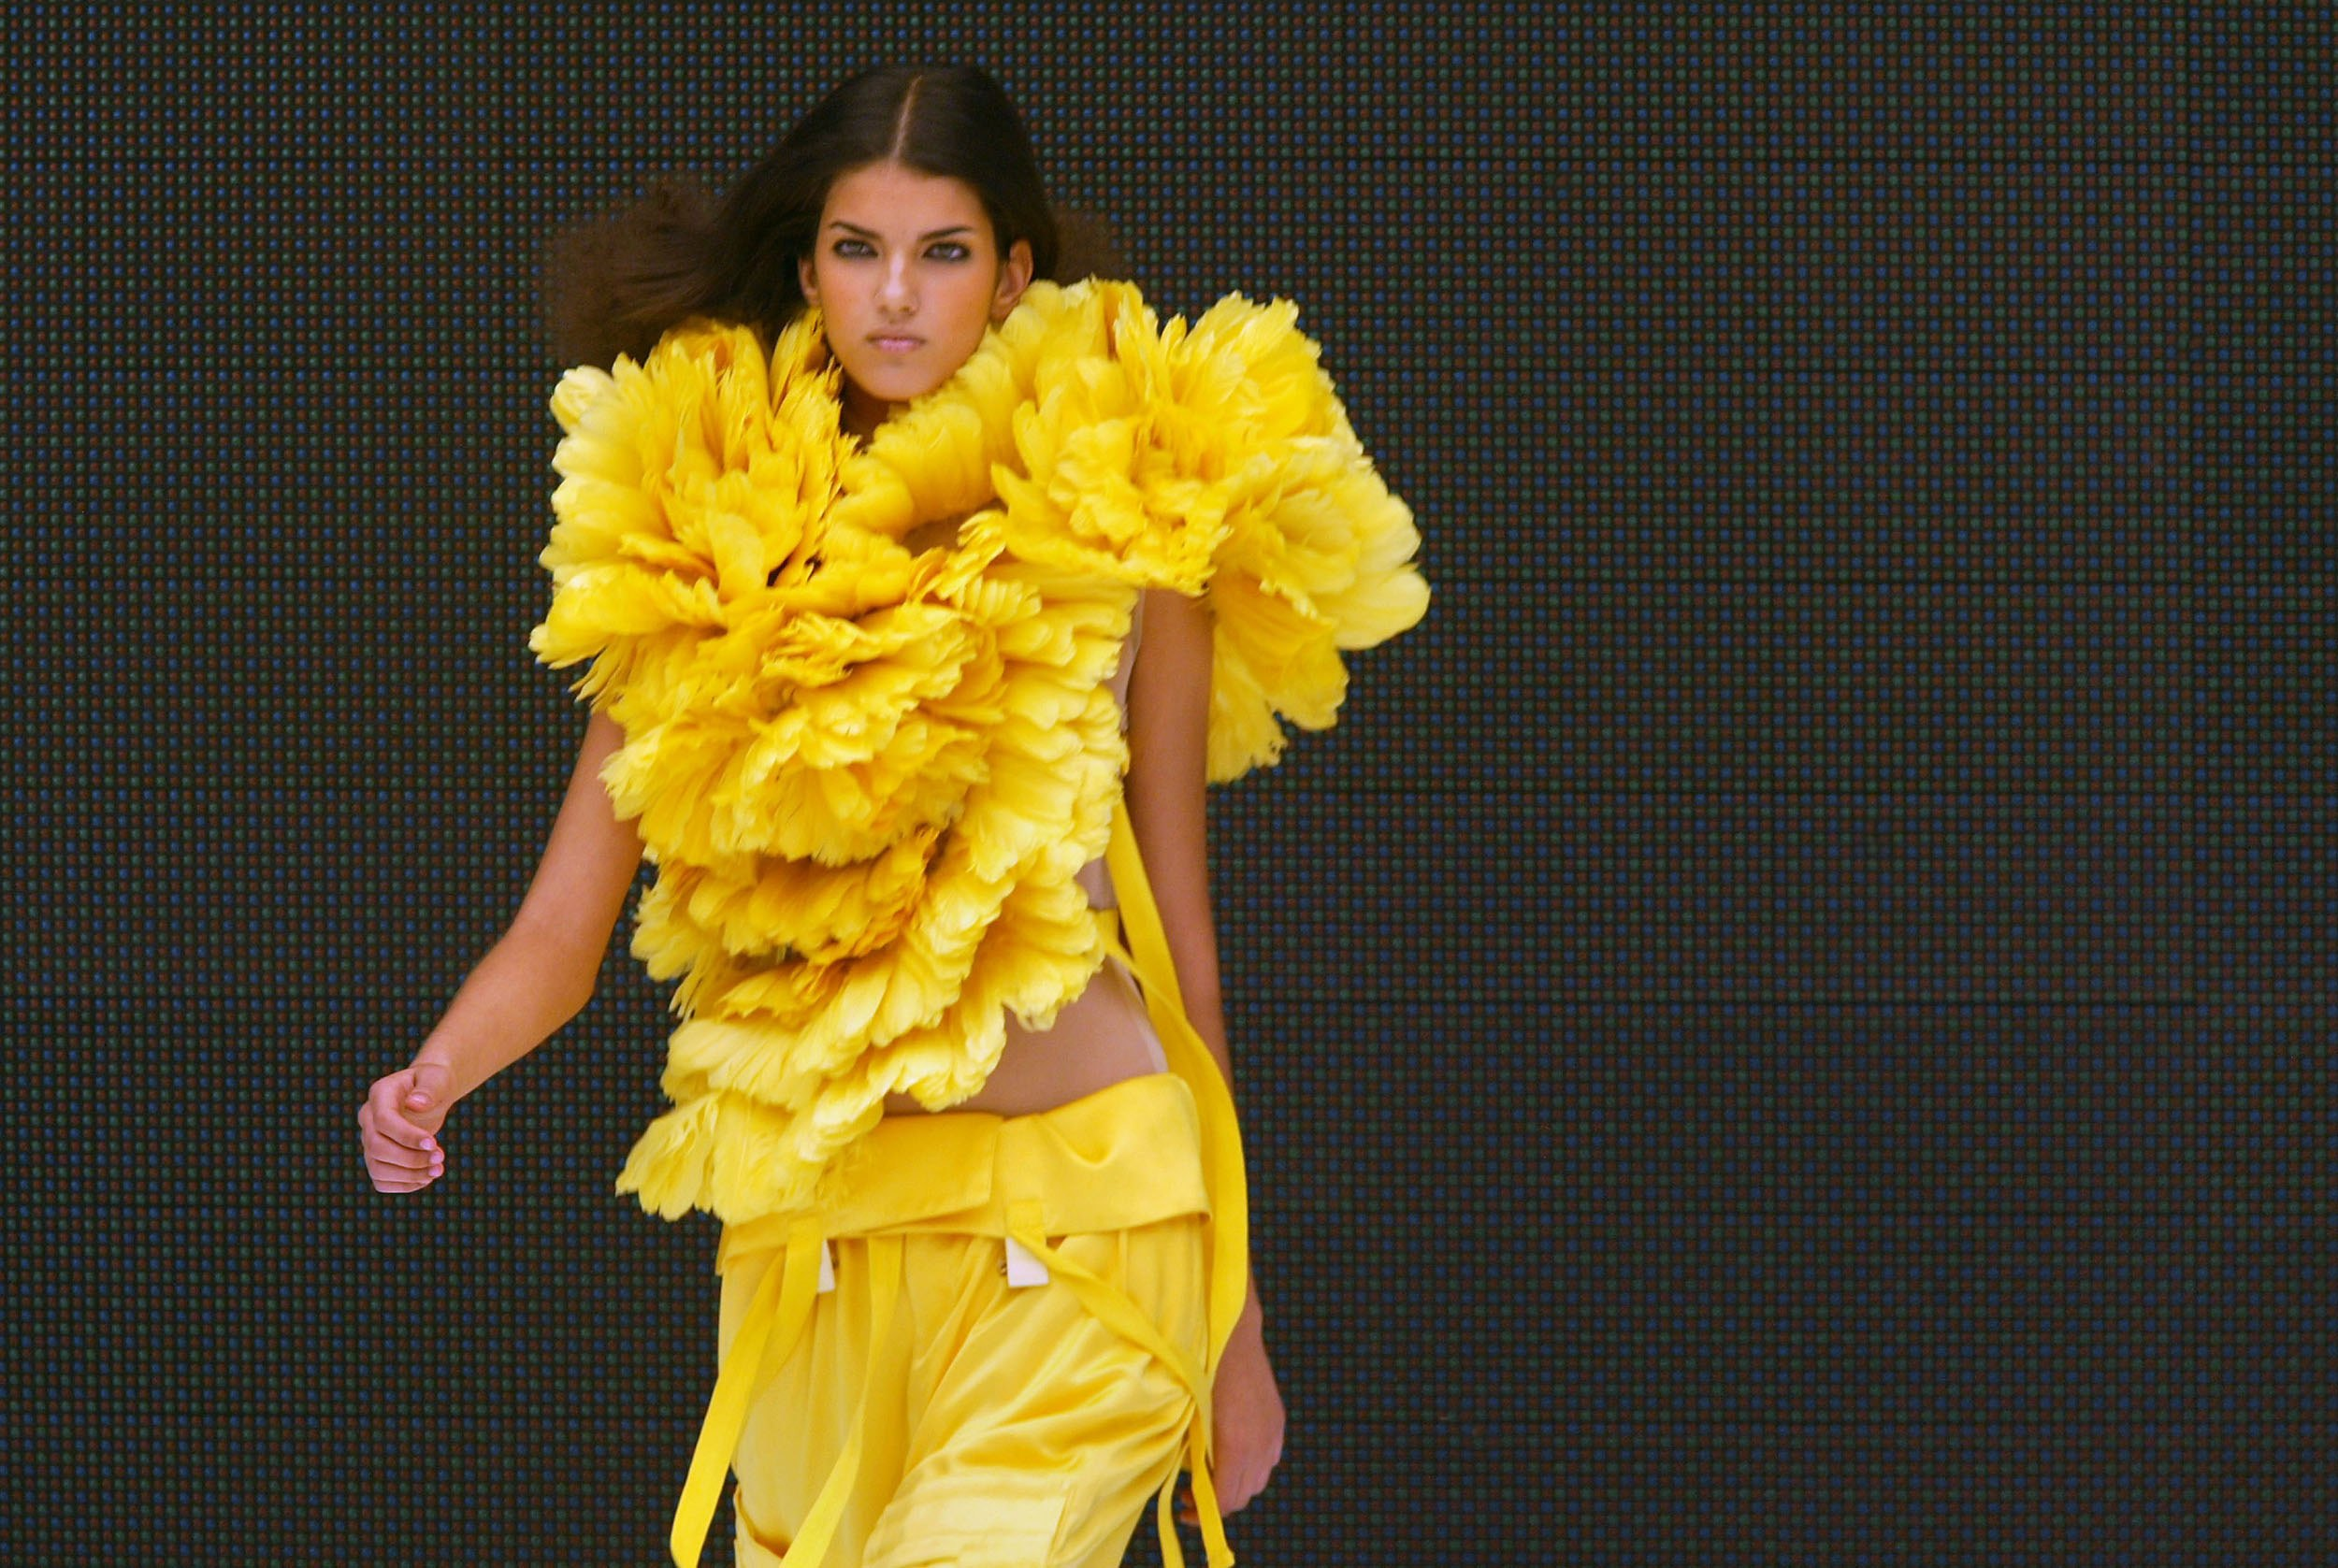 Alexander McQueen's Wildest Runway Moments